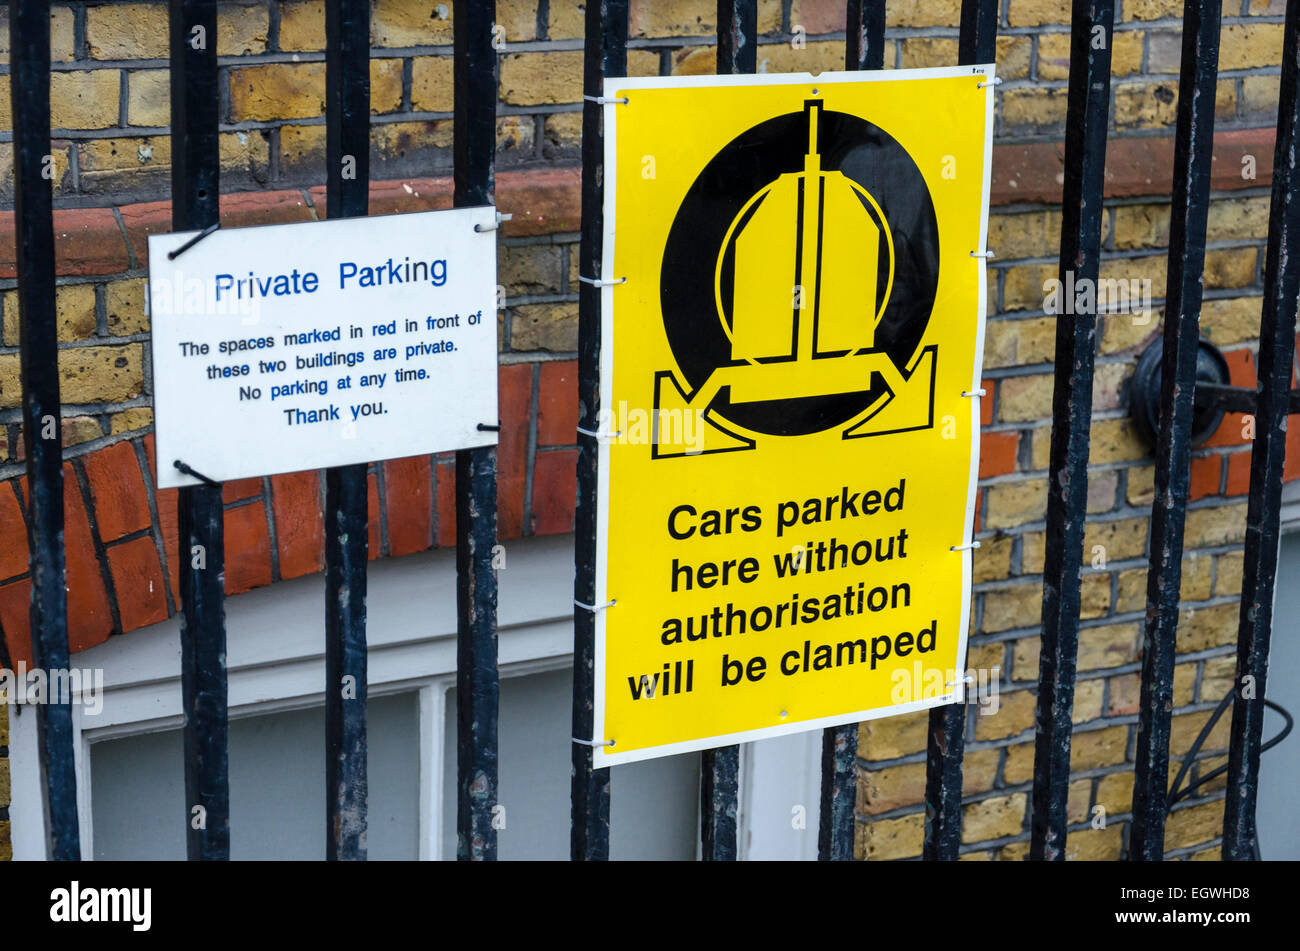 Private parking clamping sign. London, UK - Stock Image